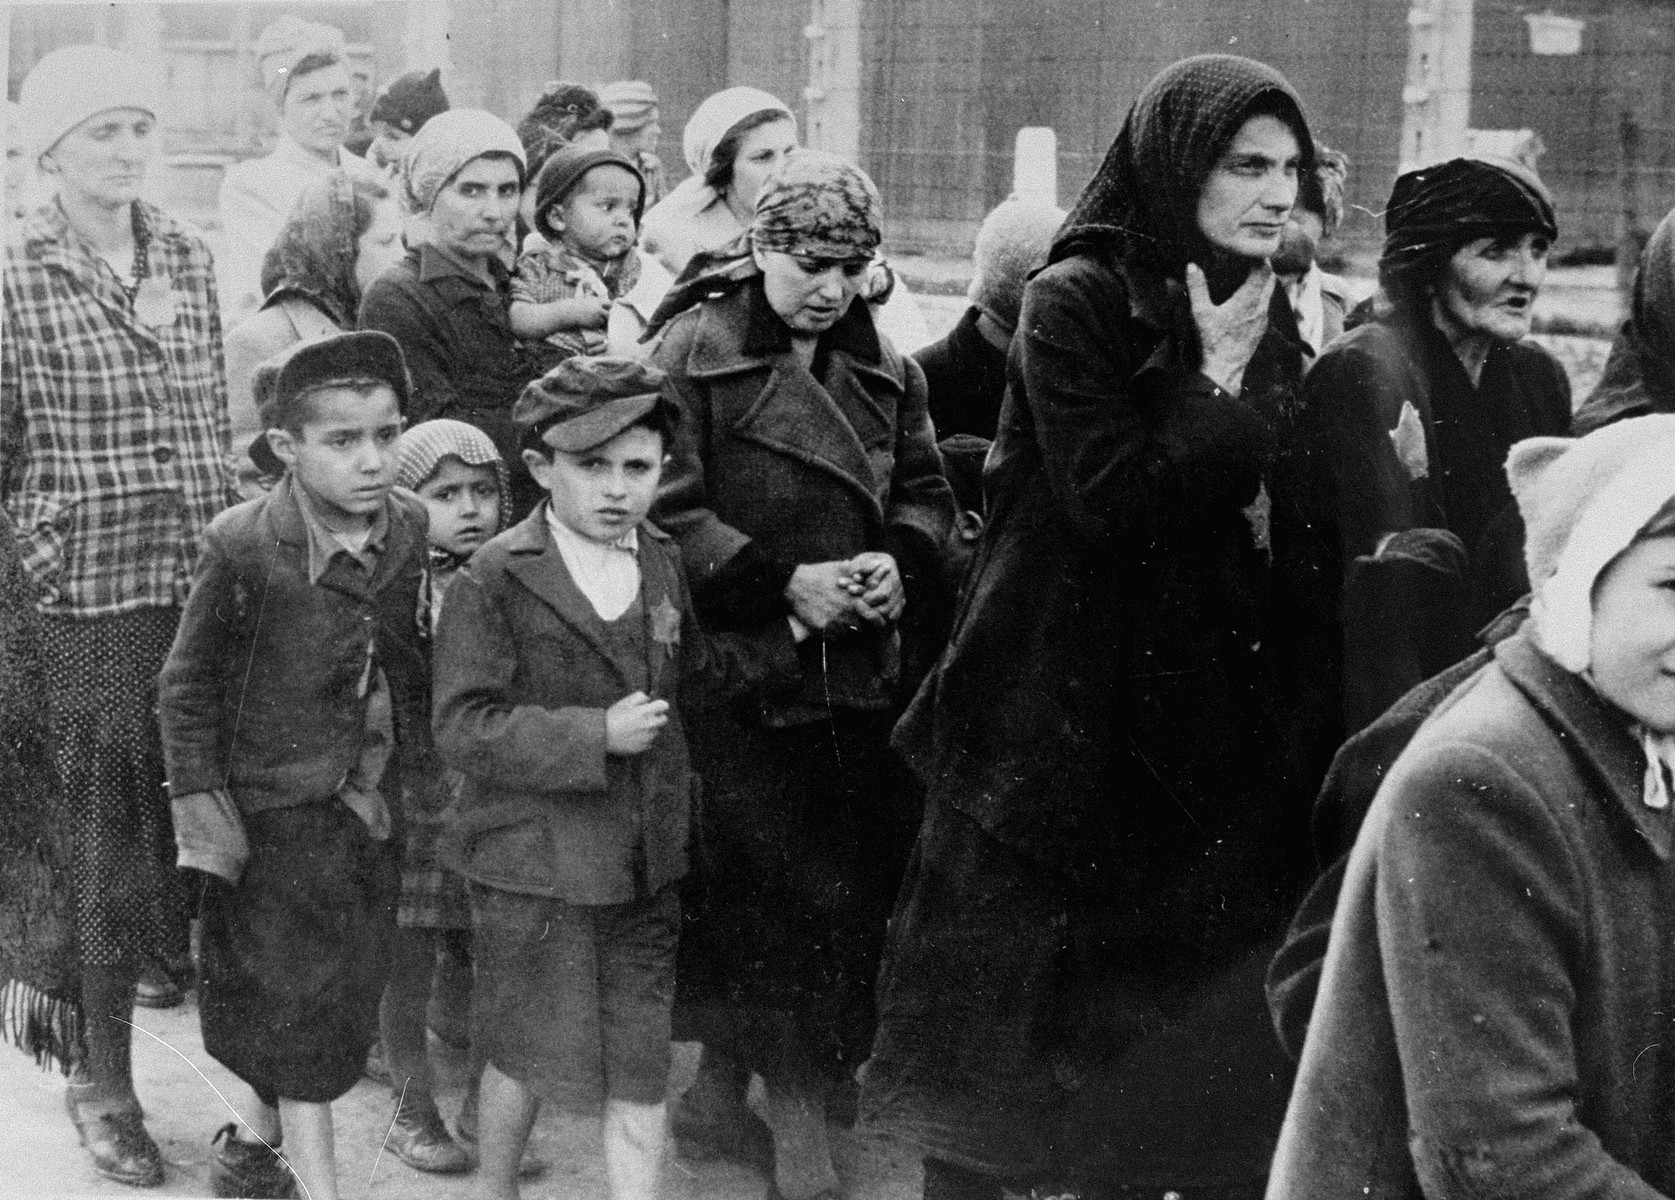 Jewish women and children from Subcarpathian Rus who have been selected for death at Auschwitz-Birkenau, walk toward the gas chambers.  Those pictured include Jolan Wollstein of Szombathely, her children Erwin, Judith, Dori and Naomi, her non-Jewish governess Edith, Henchu Mueller Falkovics, Kreindel Vogel and her sister Sase Vogel and Rita Gruenglass.